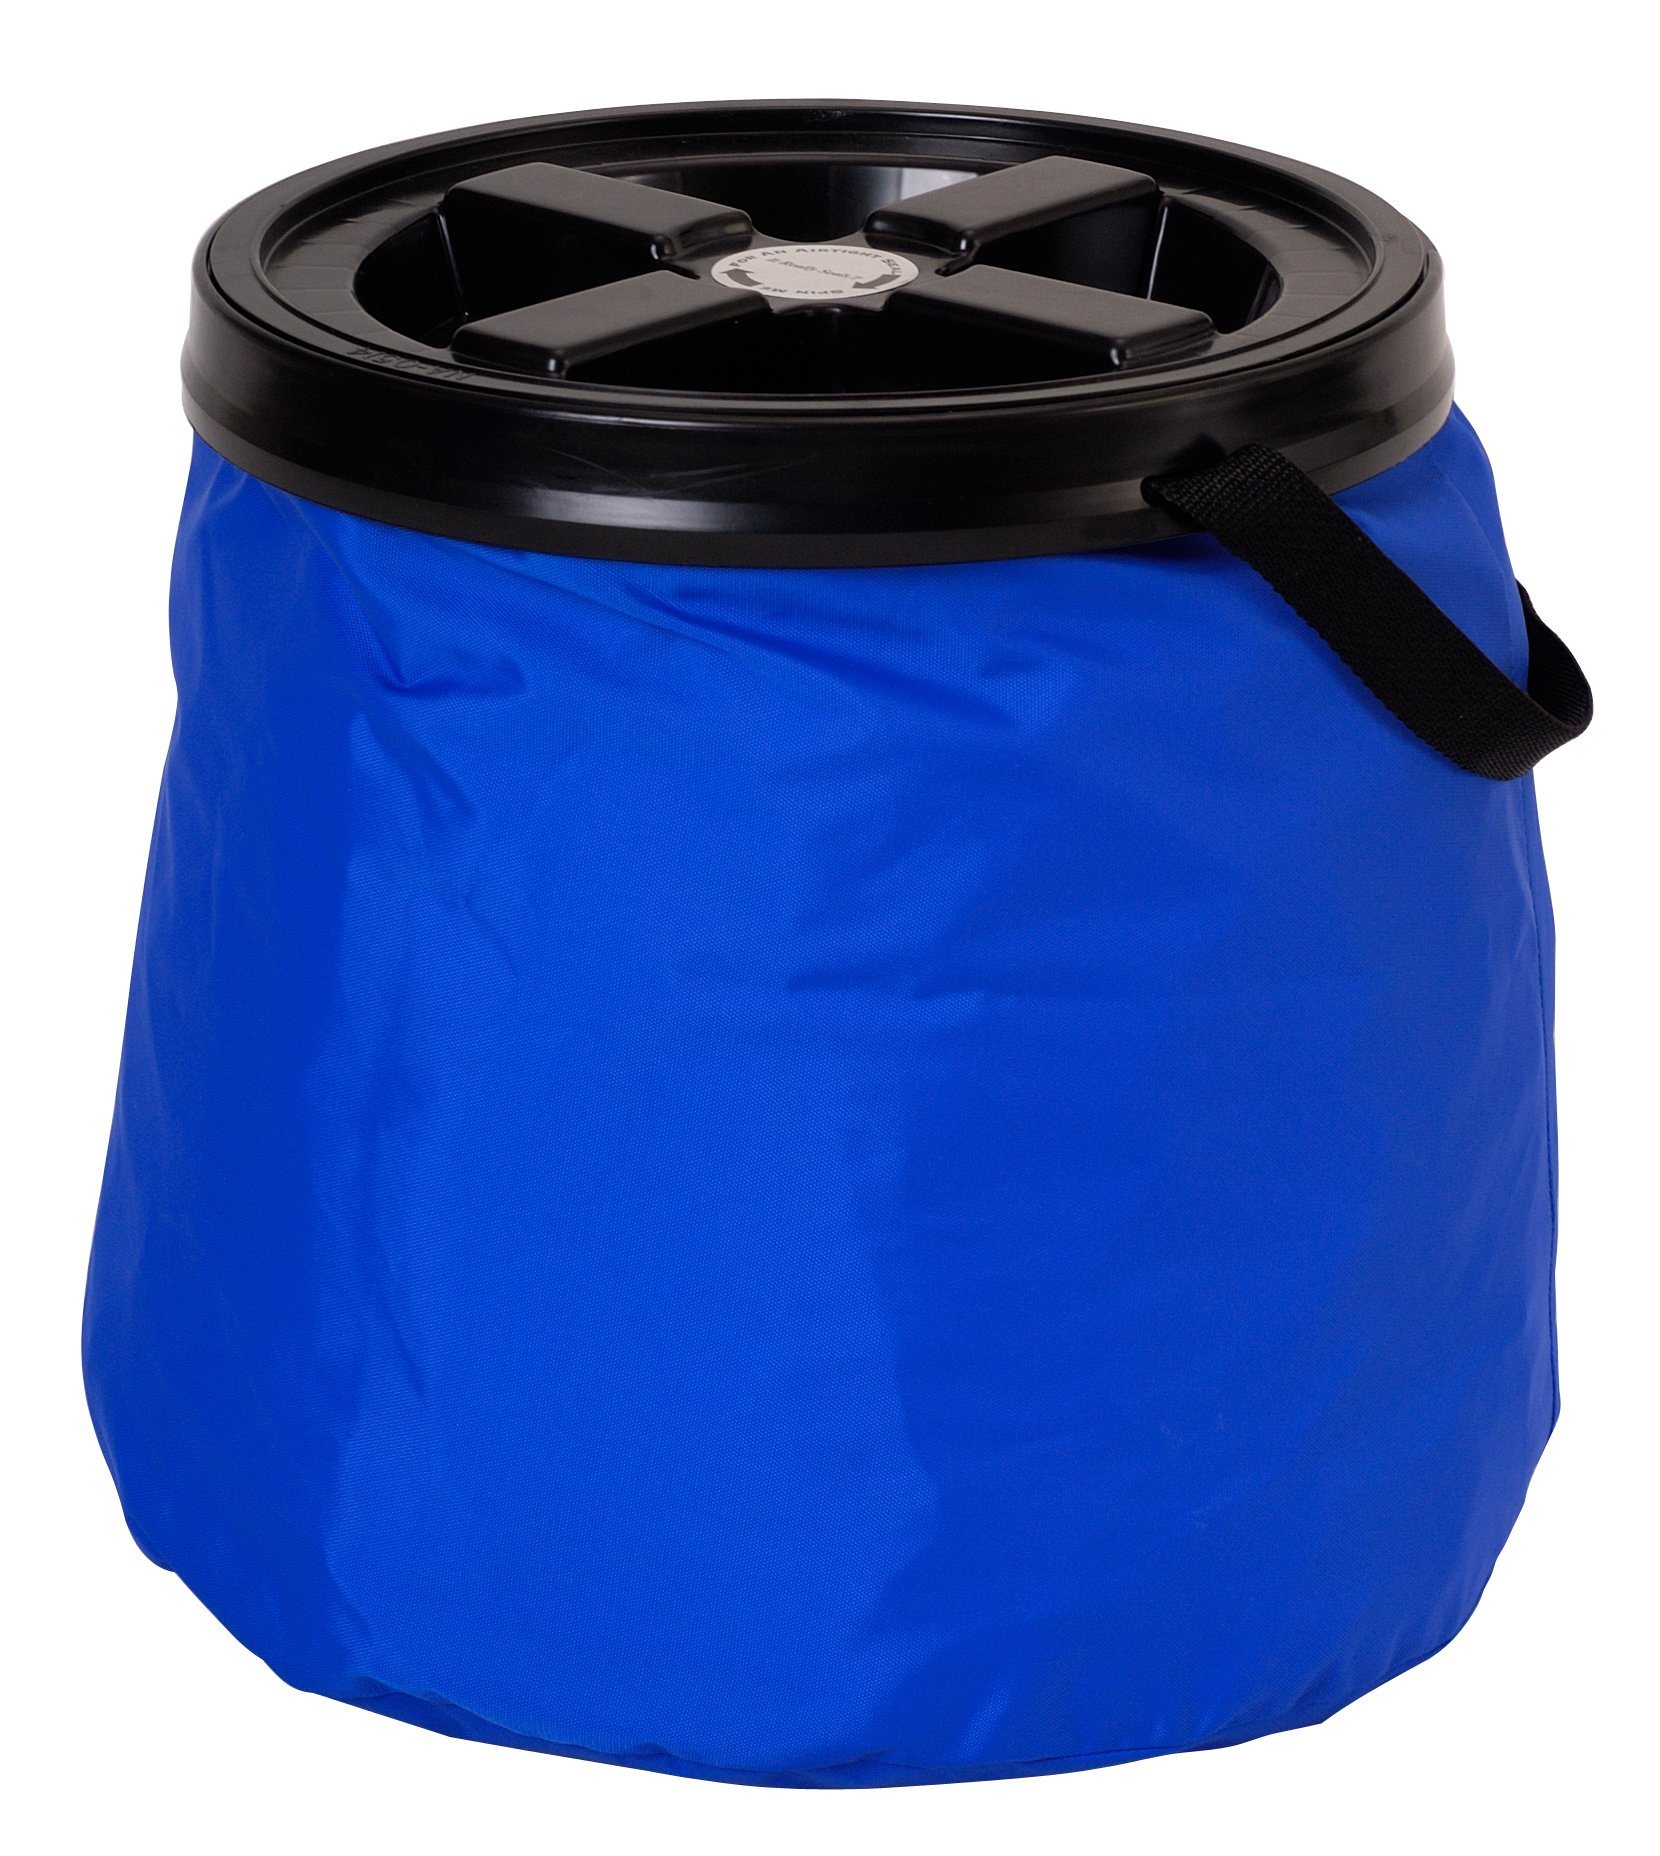 Vittles Vault SoftStore Collapsible, Airtight Pet Food Container 30 Pound Capacity, Blue